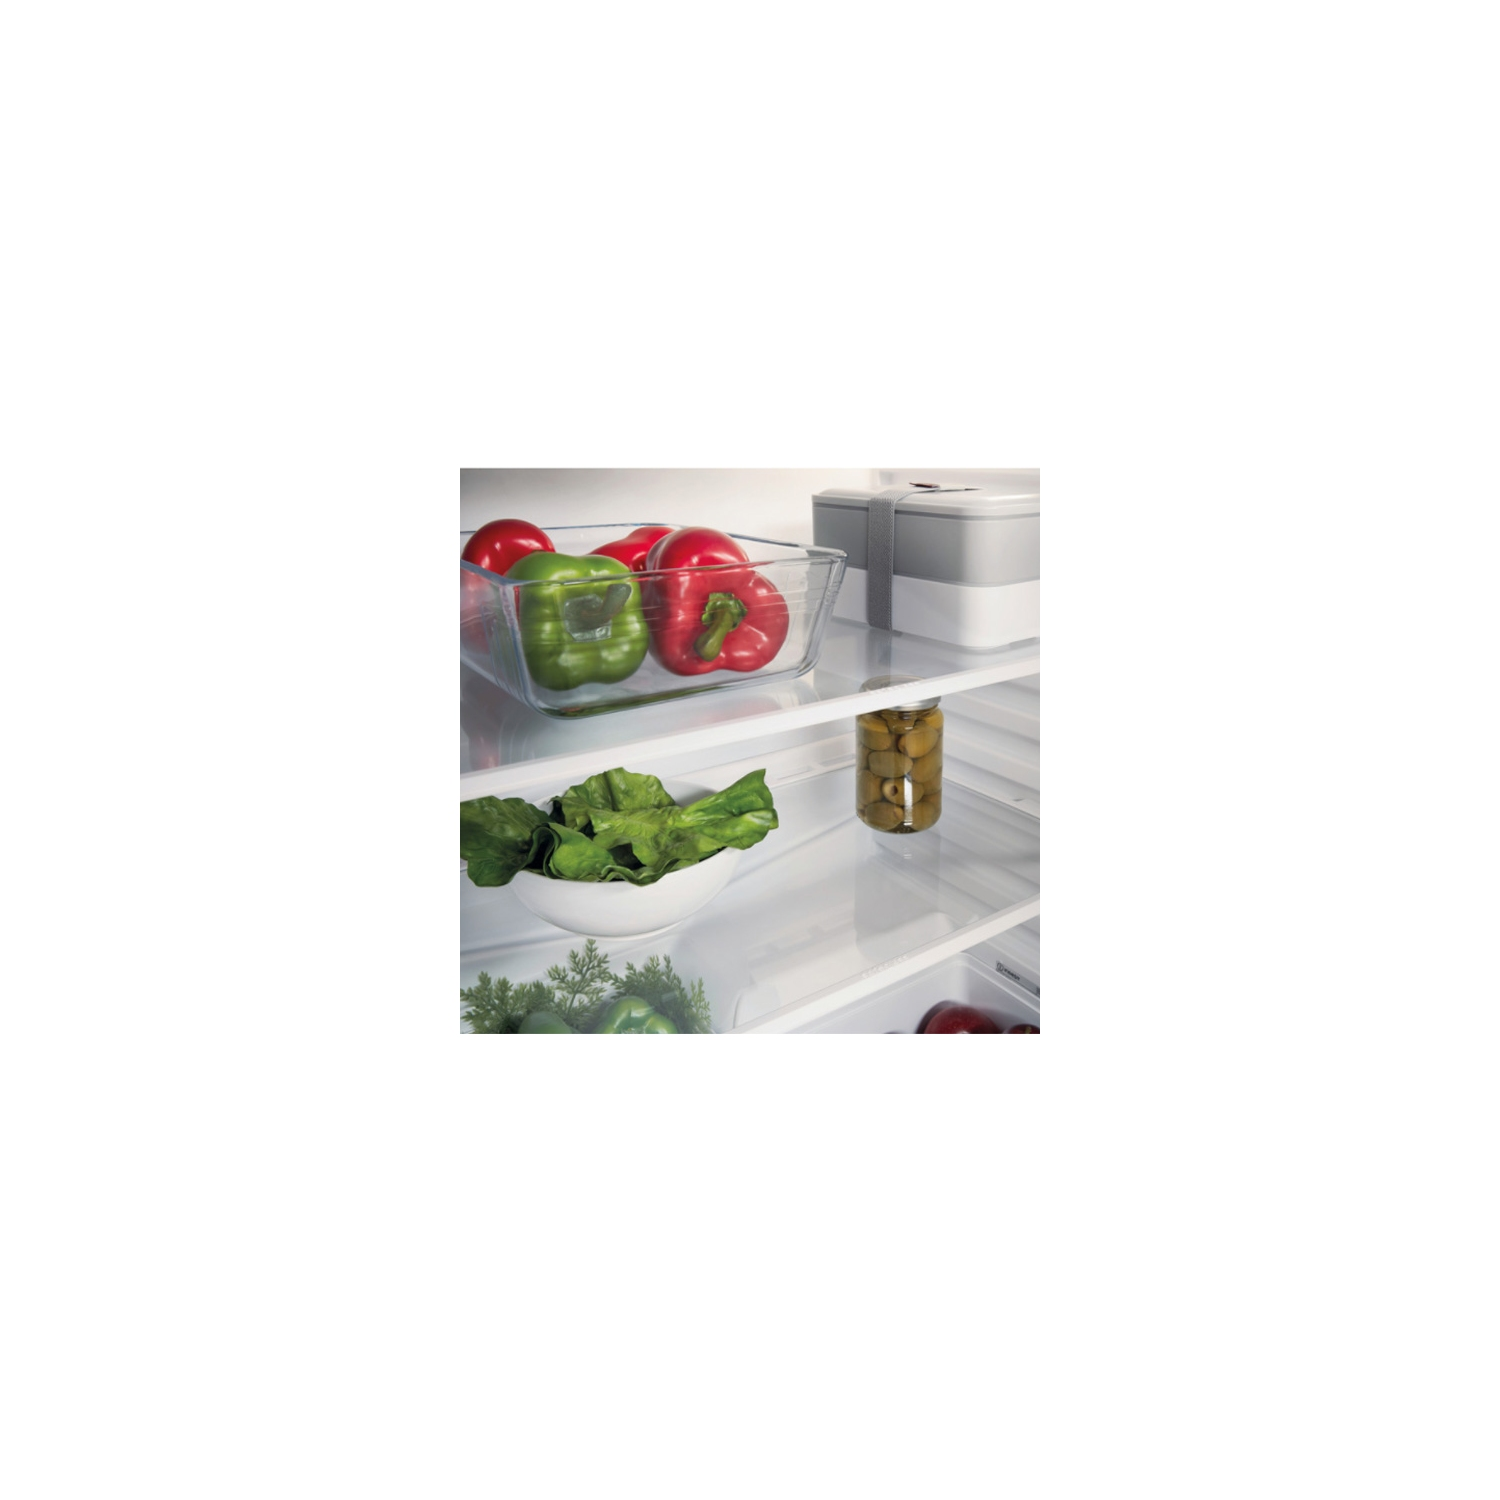 Indesit 60cm Built-Under Fridge - White - A+ Rated - 2